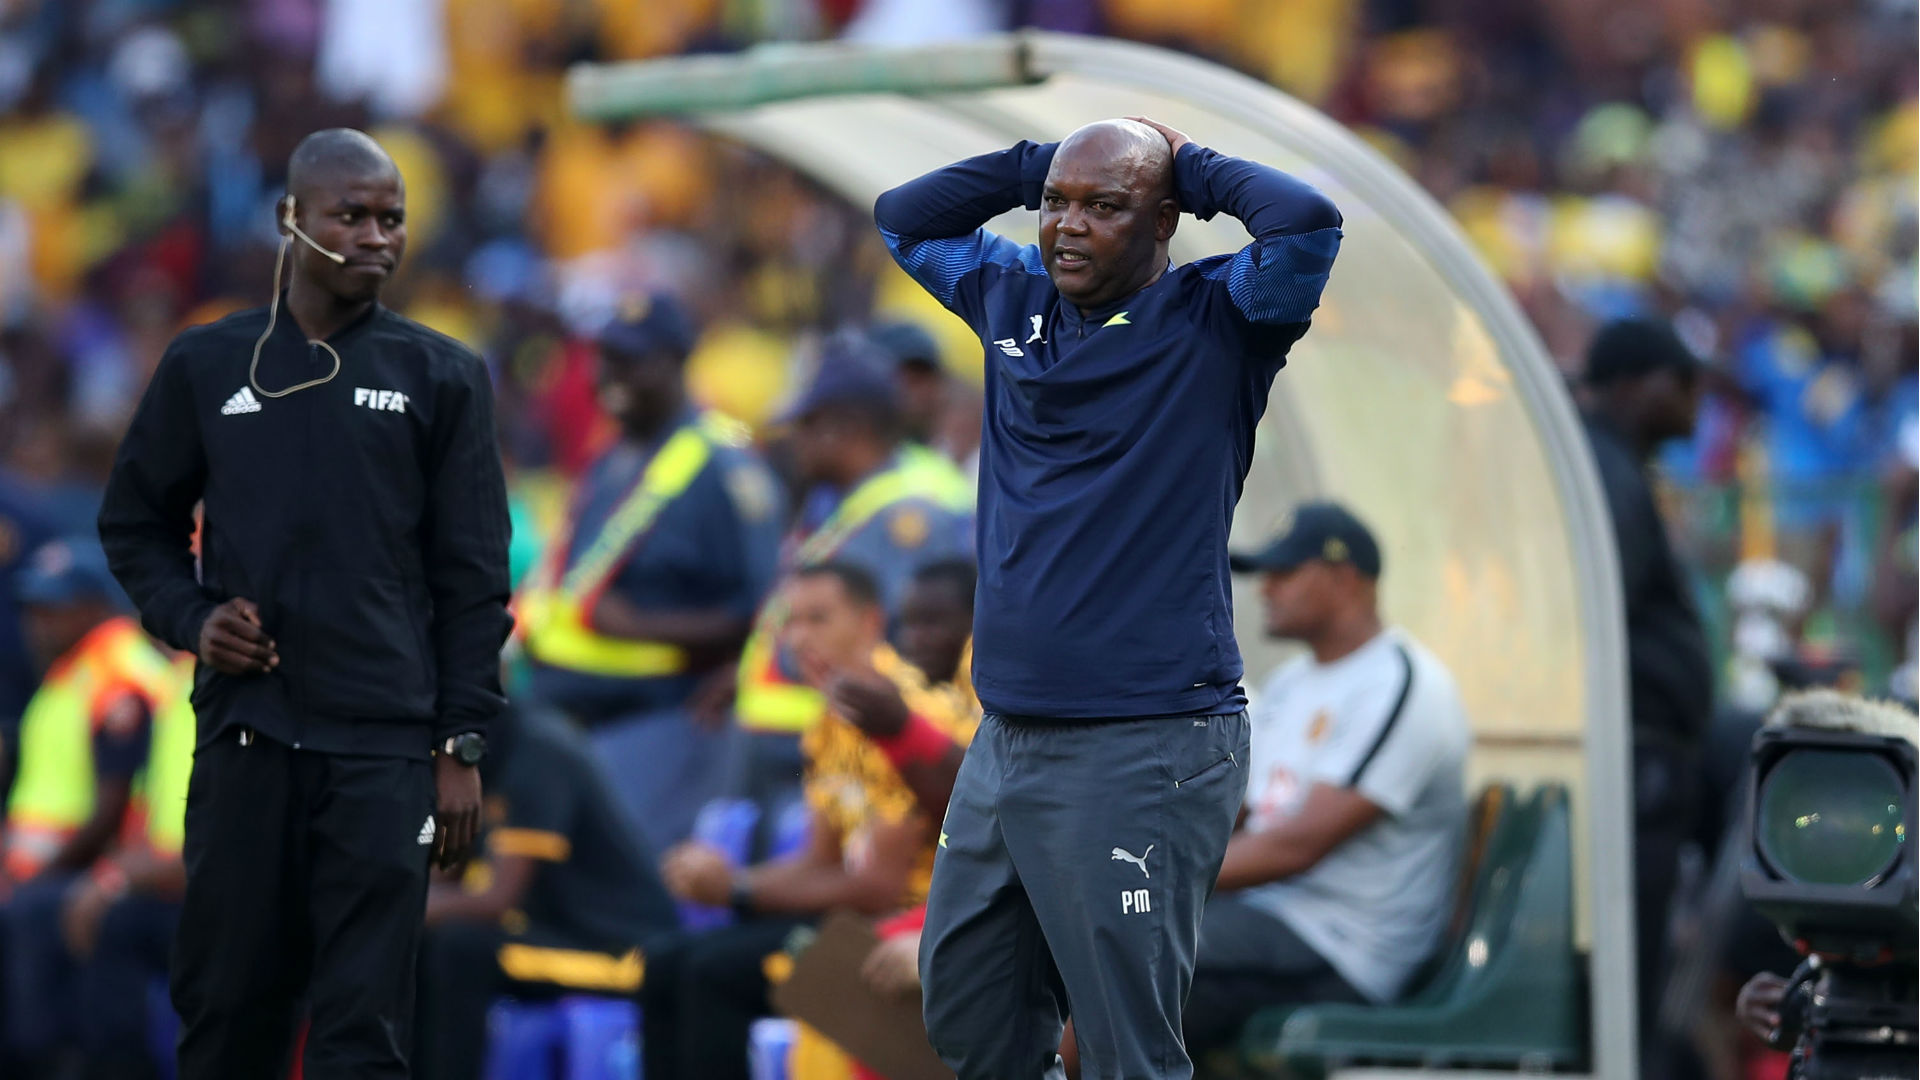 Mamelodi Sundowns legal chief: We are being hit left, right and centre